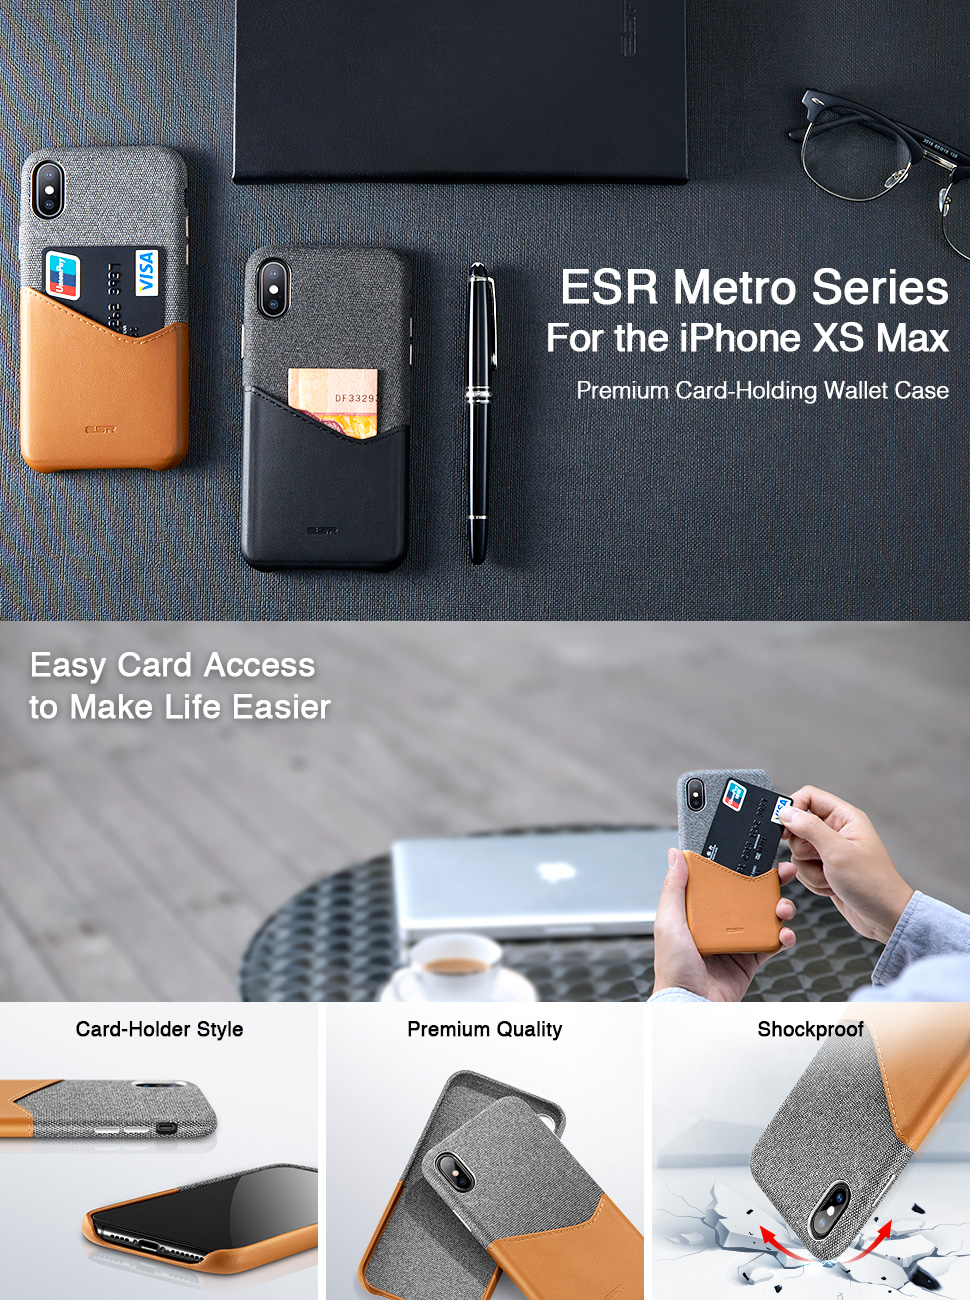 ESR Metro case for iPhone XS Max, Gohub Shop